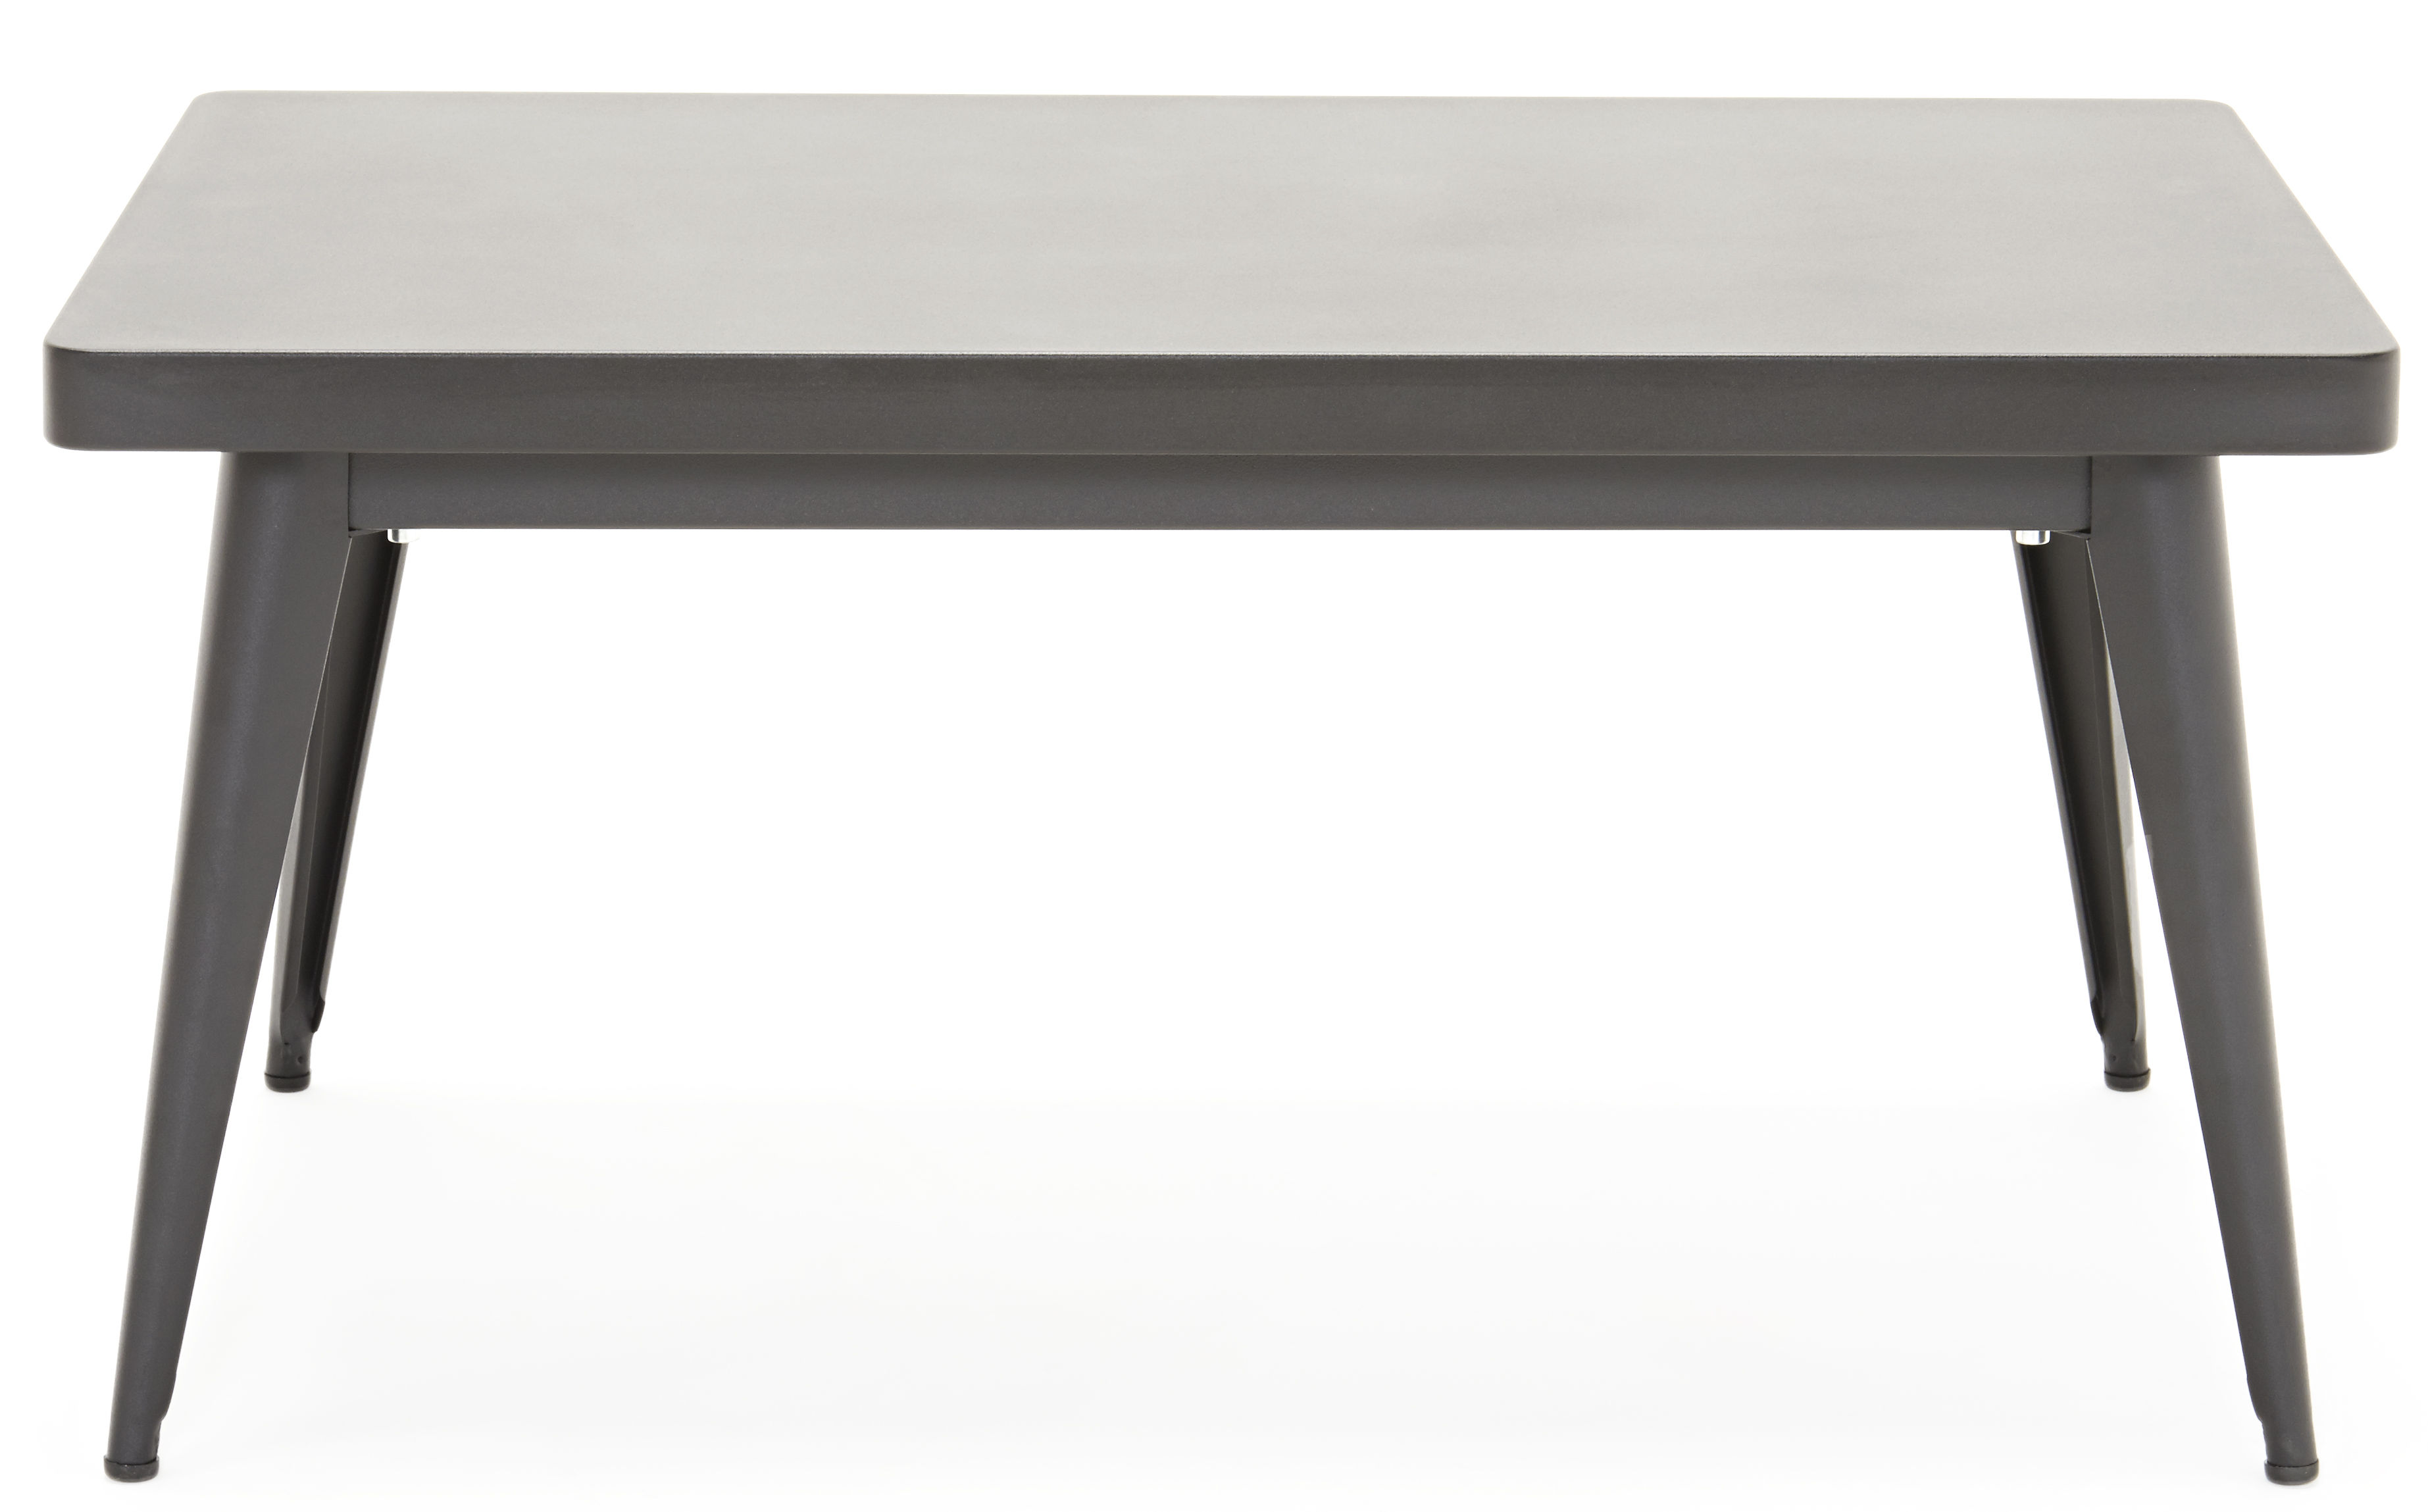 Furniture - Coffee Tables - 55 Coffee table by Tolix - Black - Lacquered recycled steel